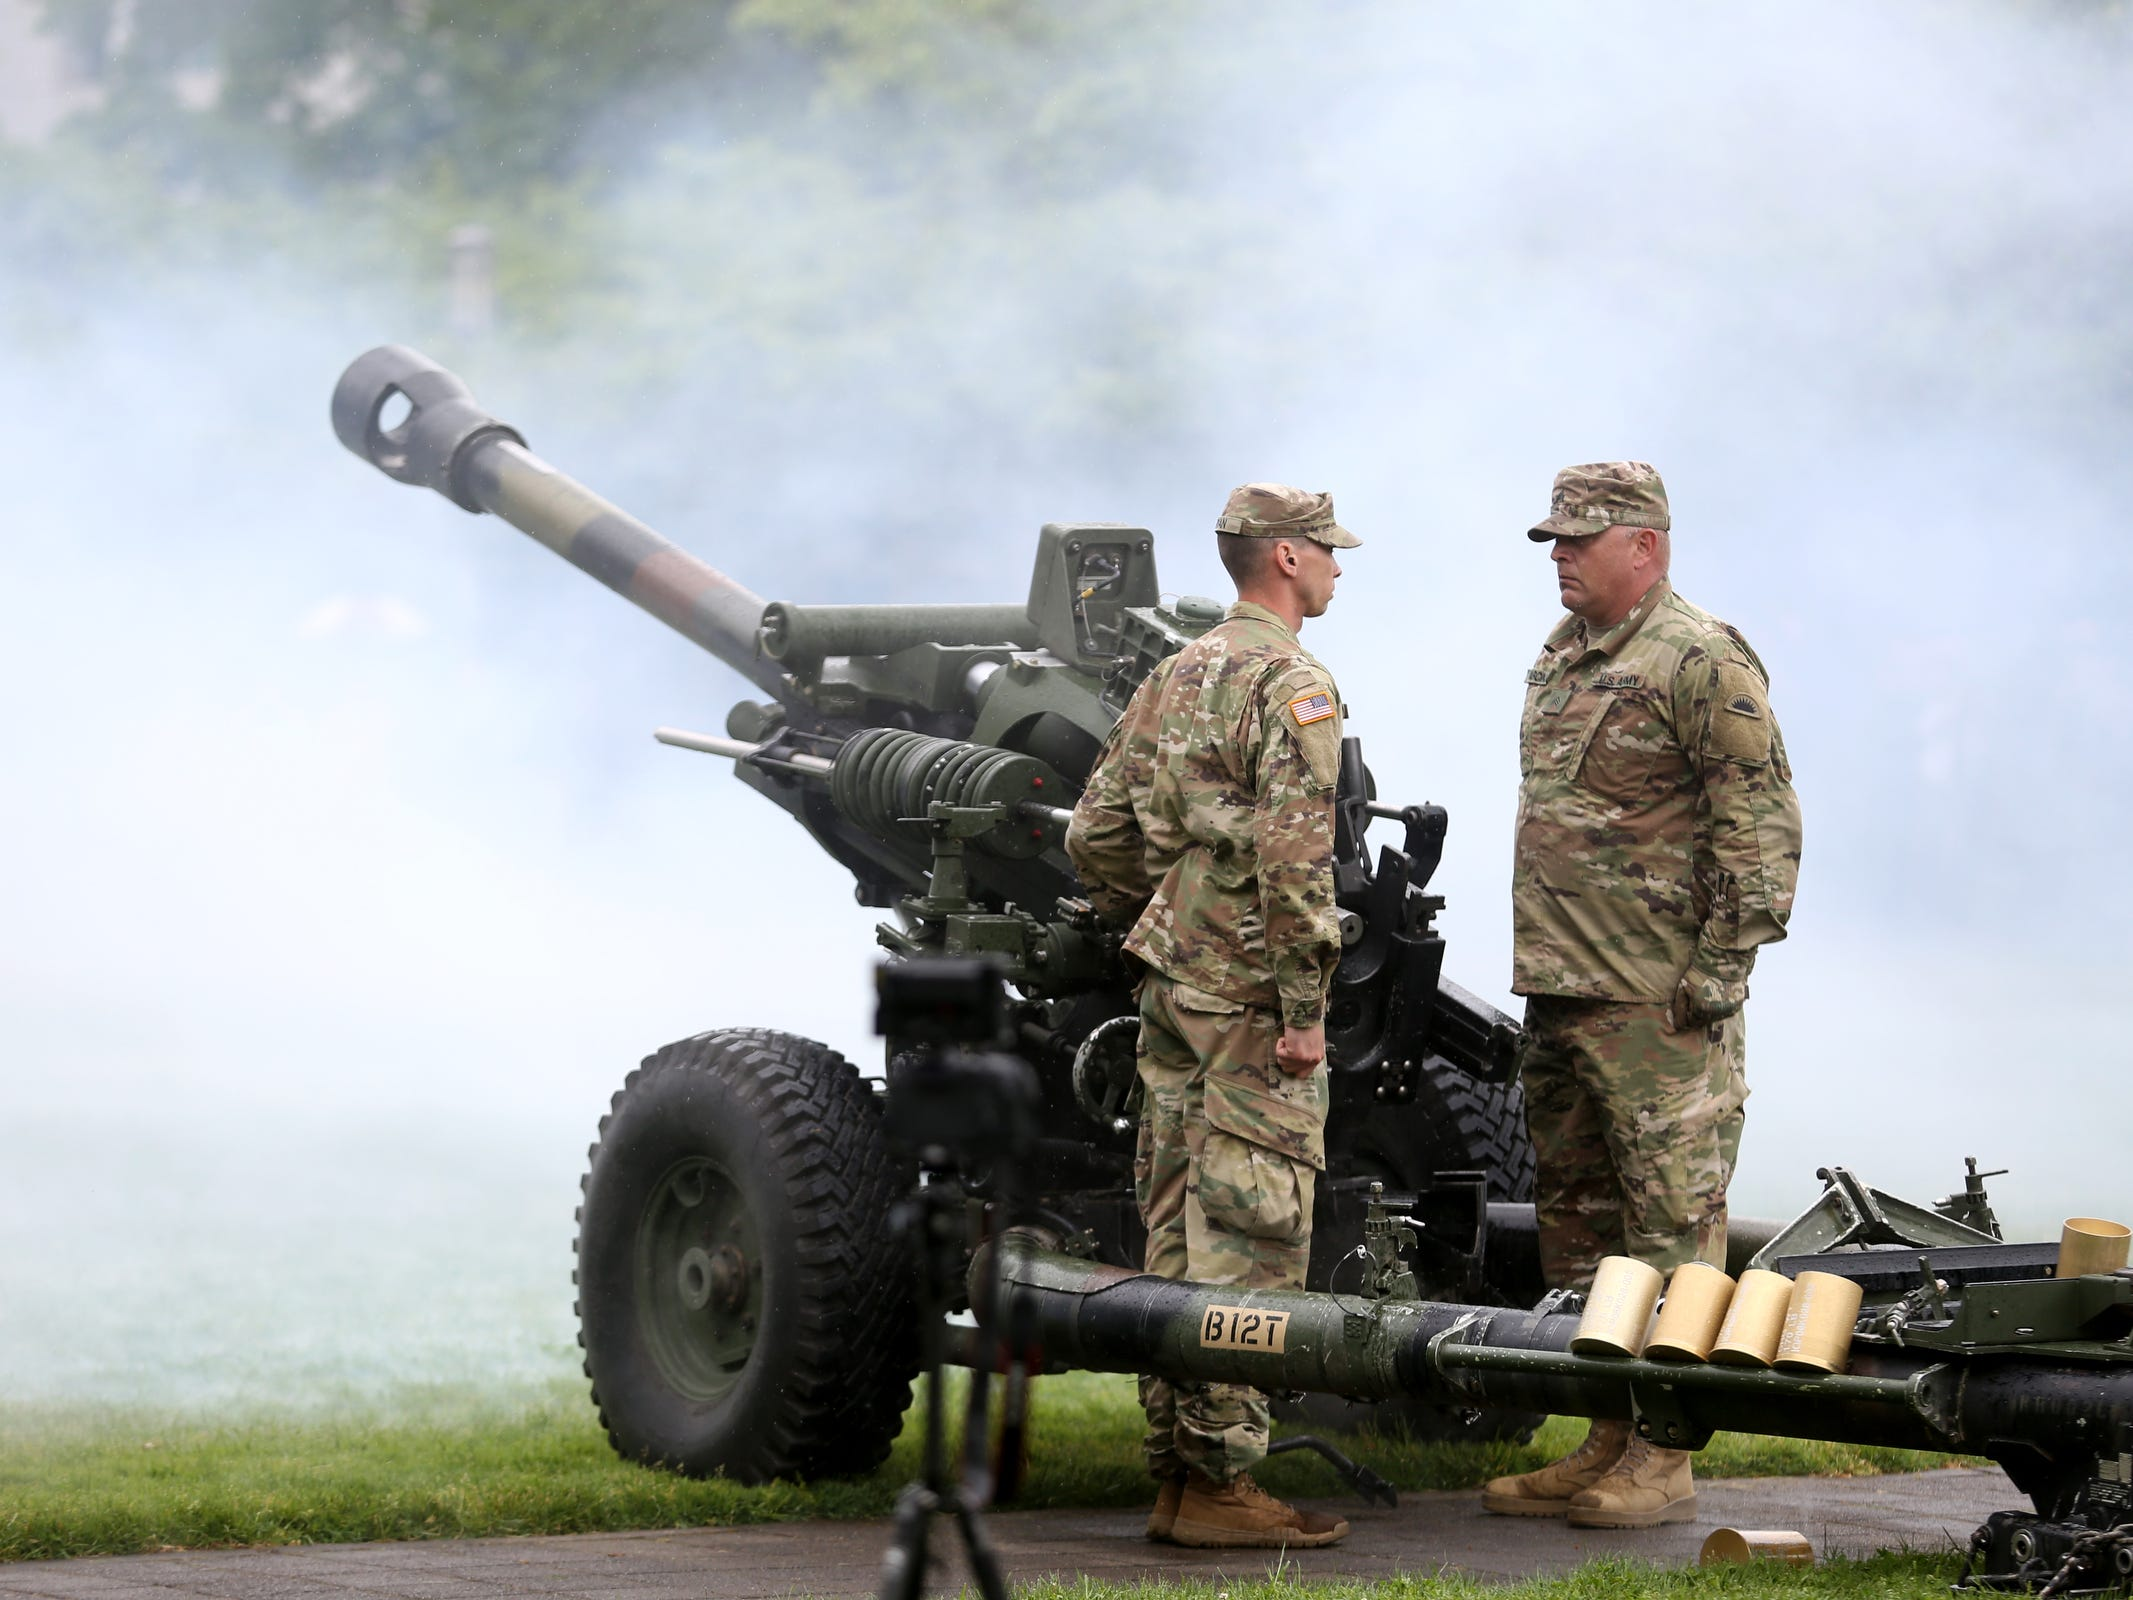 A Howitzer artillery salute during an Armed Forces Day celebration at the Oregon State Capitol in Salem on May 14, 2019.